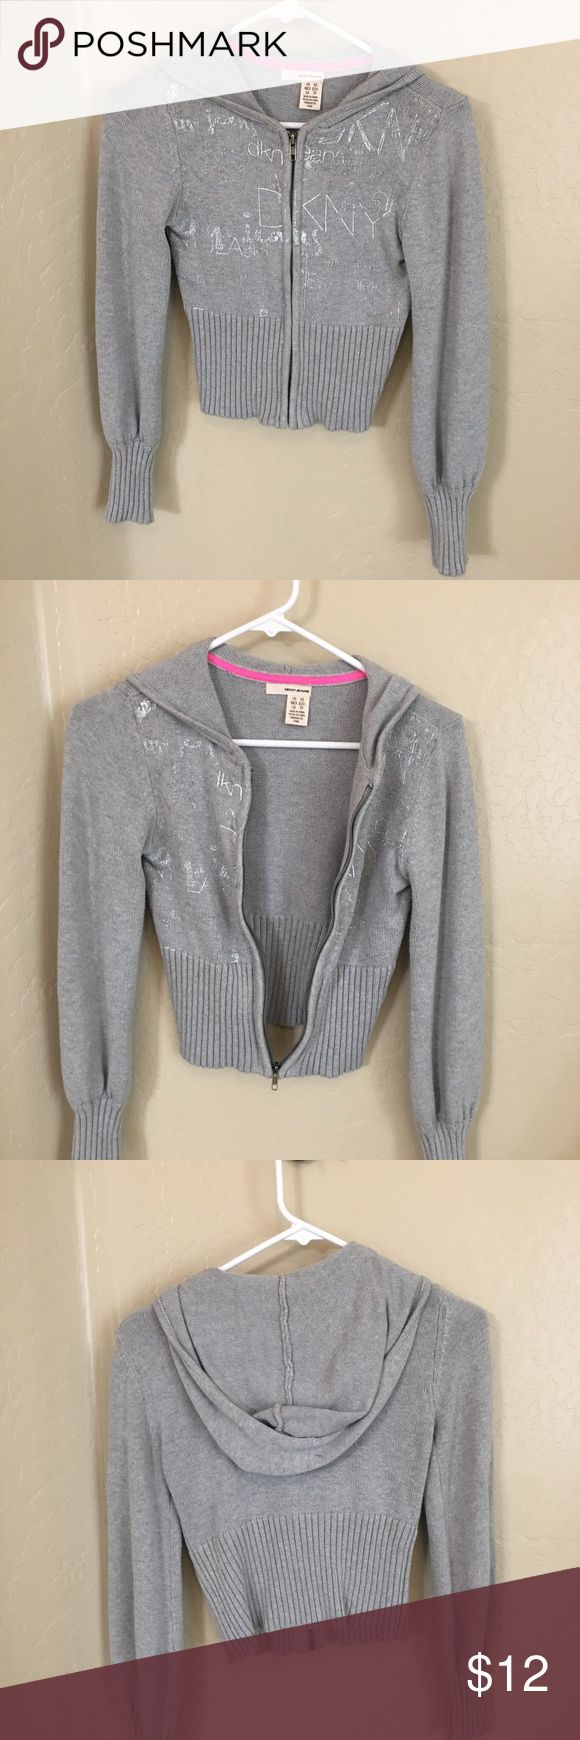 Grey DKNY zip up hoody Extra small DKNY zip up hoody. In good condition. Has some metallic lettering on front, hard to see in picture DKNY Sweaters